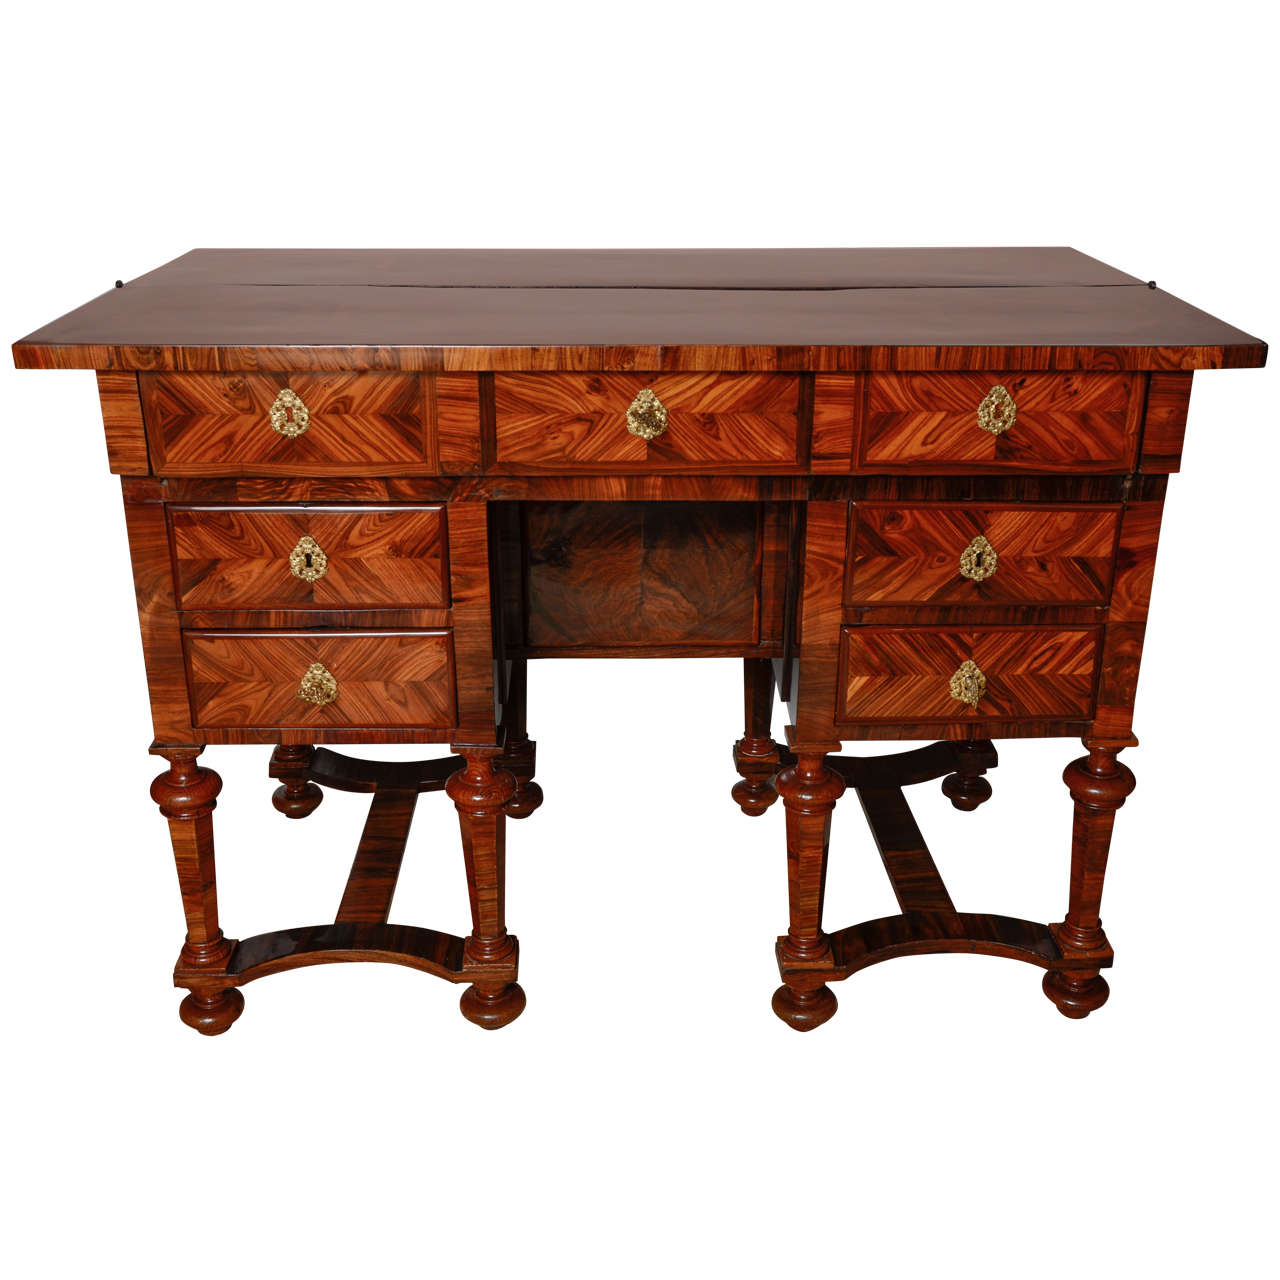 a french louis xiv kingwood bureau mazarin at 1stdibs. Black Bedroom Furniture Sets. Home Design Ideas